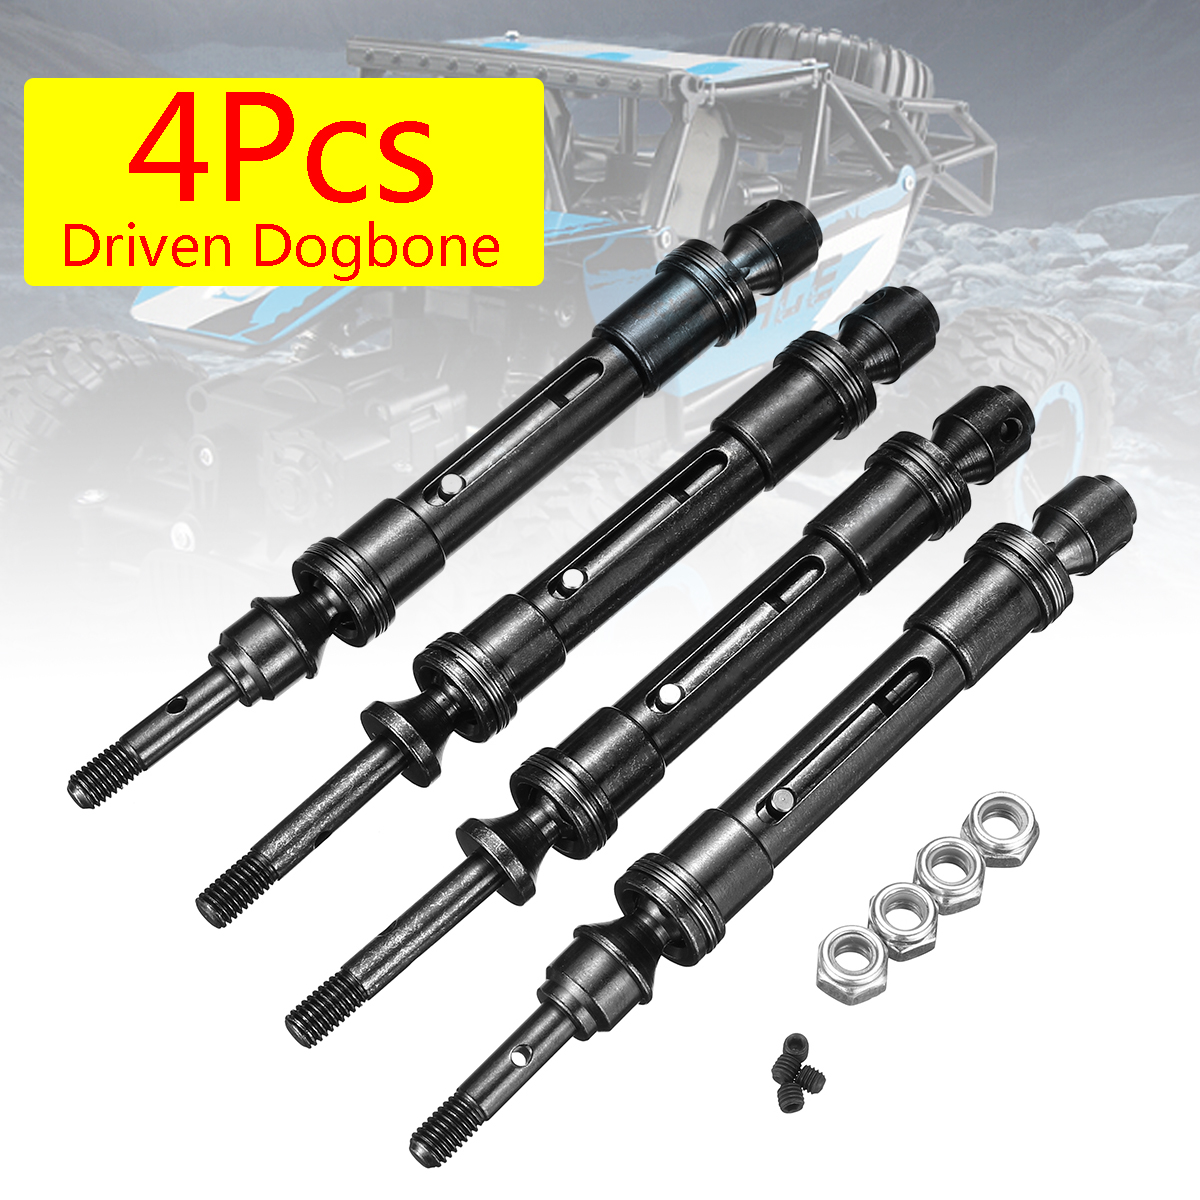 1 Pair Set Black Upgrade Parts Harden Steel #45 Rear Axle CVD Drive Shaft with Alloy Body 67076-4 GPM Traxxas Rustler 4X4 VXL